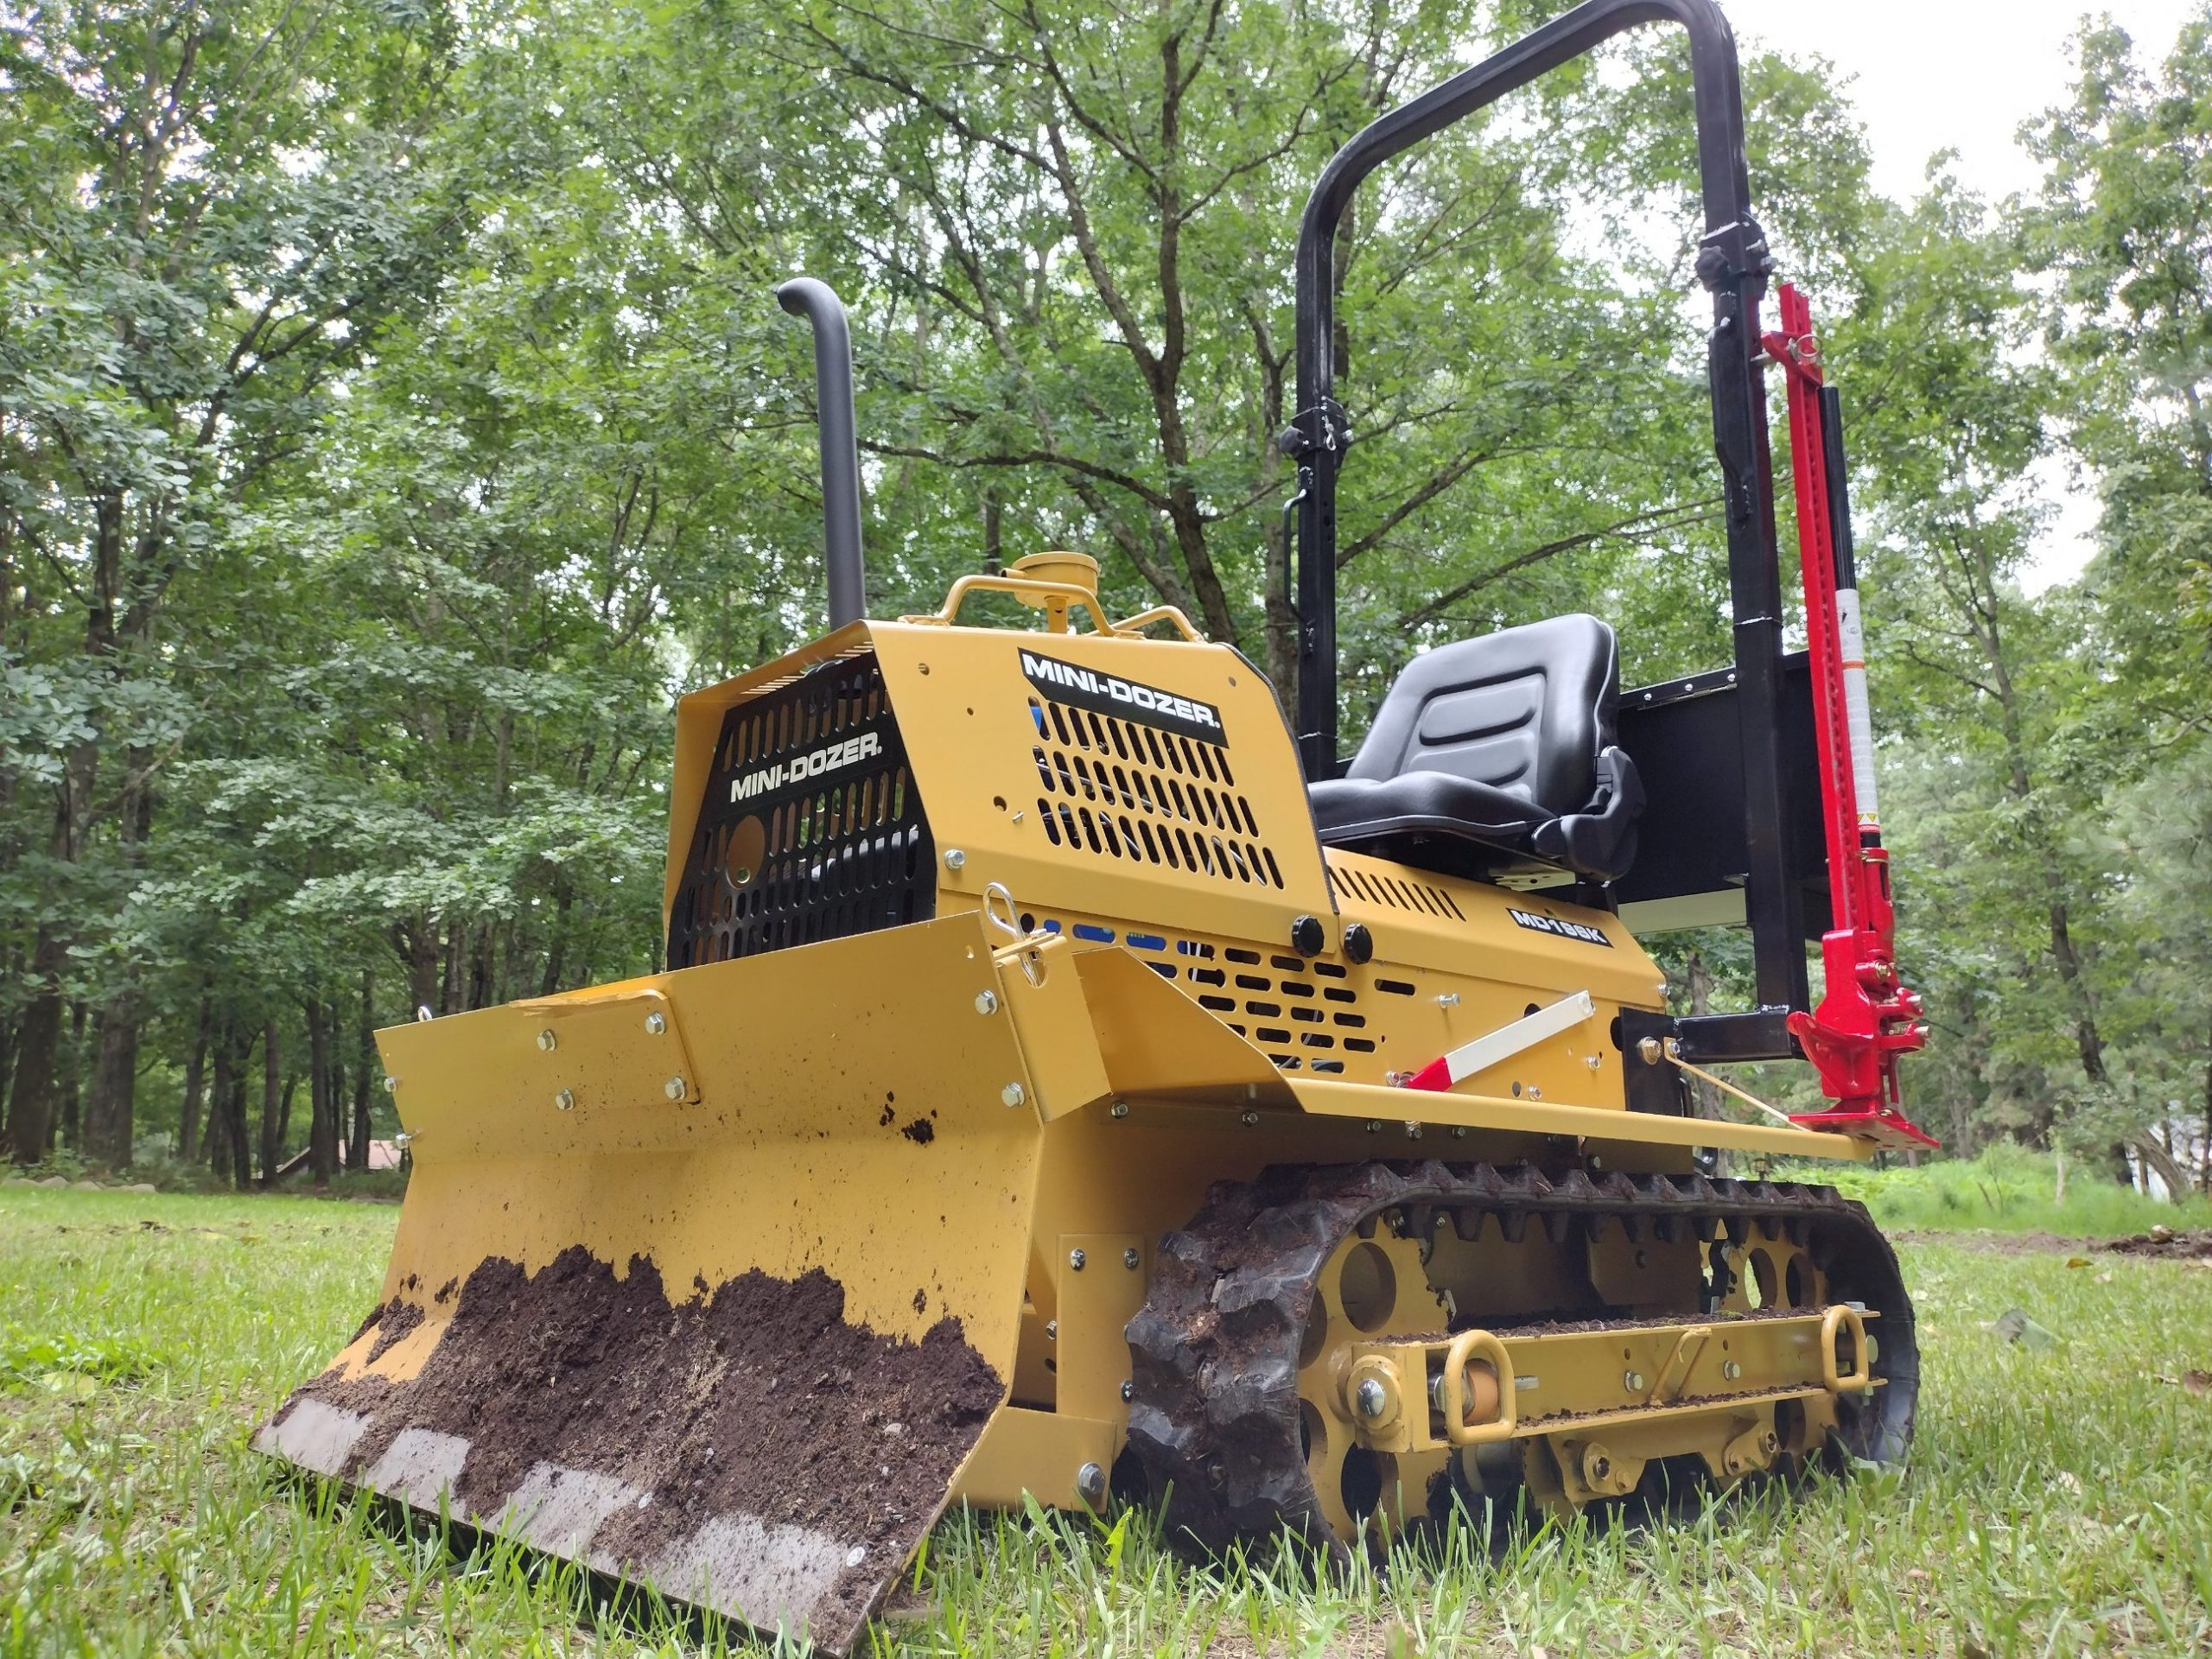 Satisfied Customer Reveals: Why He Had So Much Fun Building his MINI-DOZER® MD196K